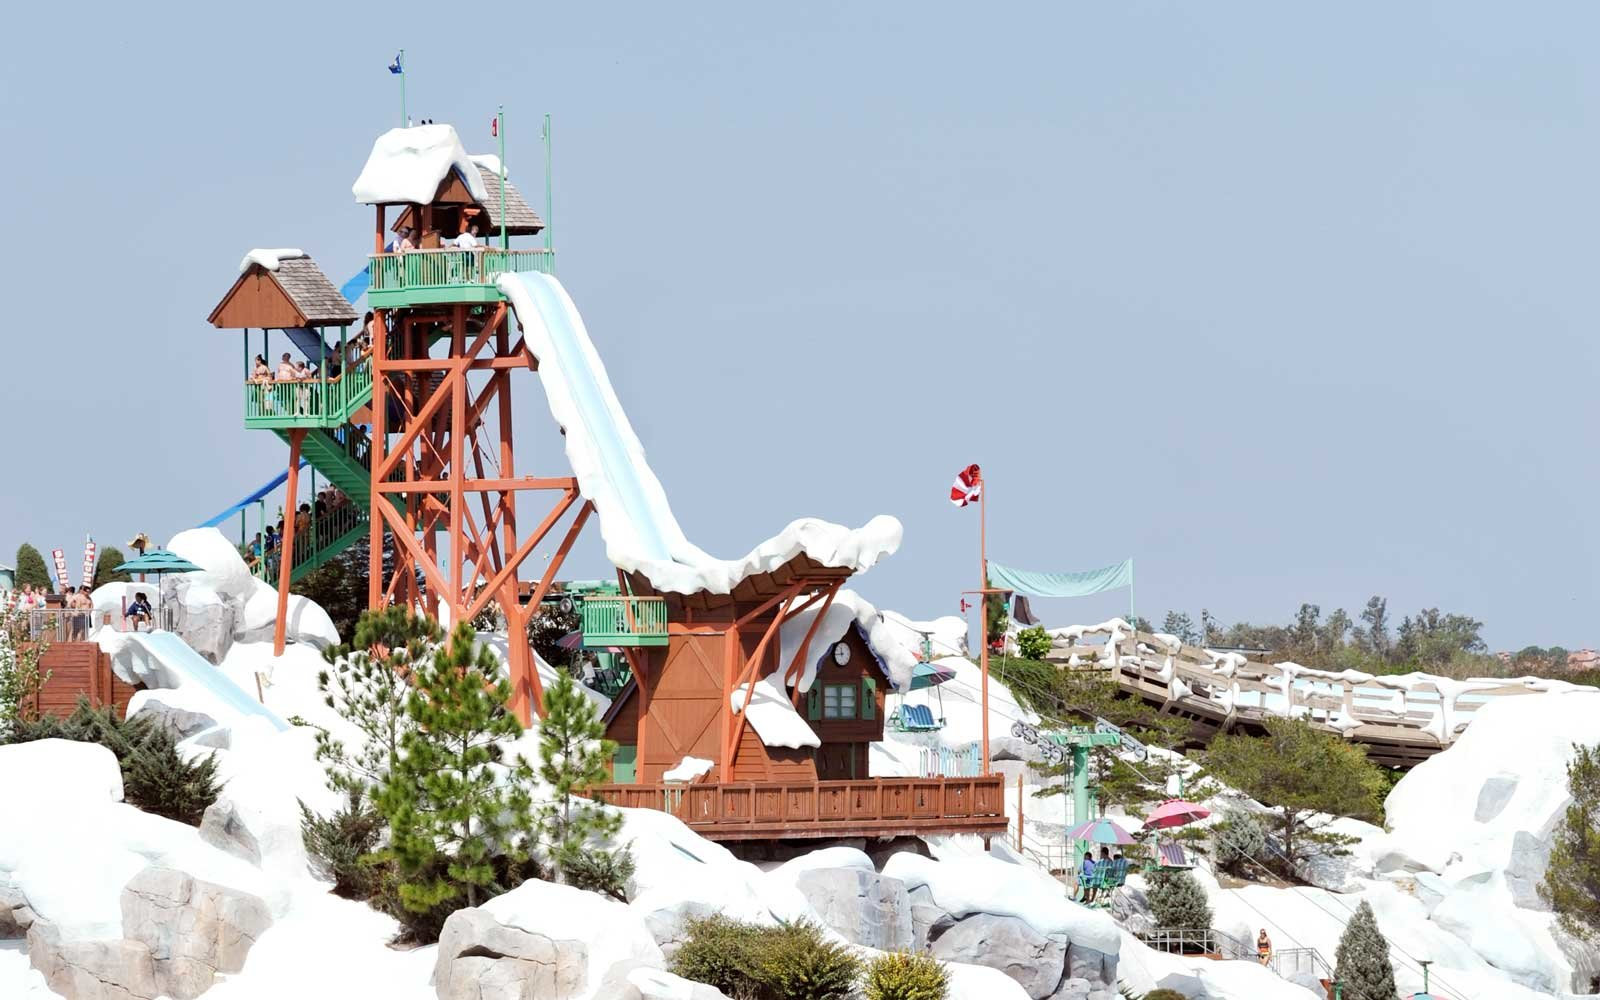 Summit Plummet — Blizzard Beach at Disney World, Florida